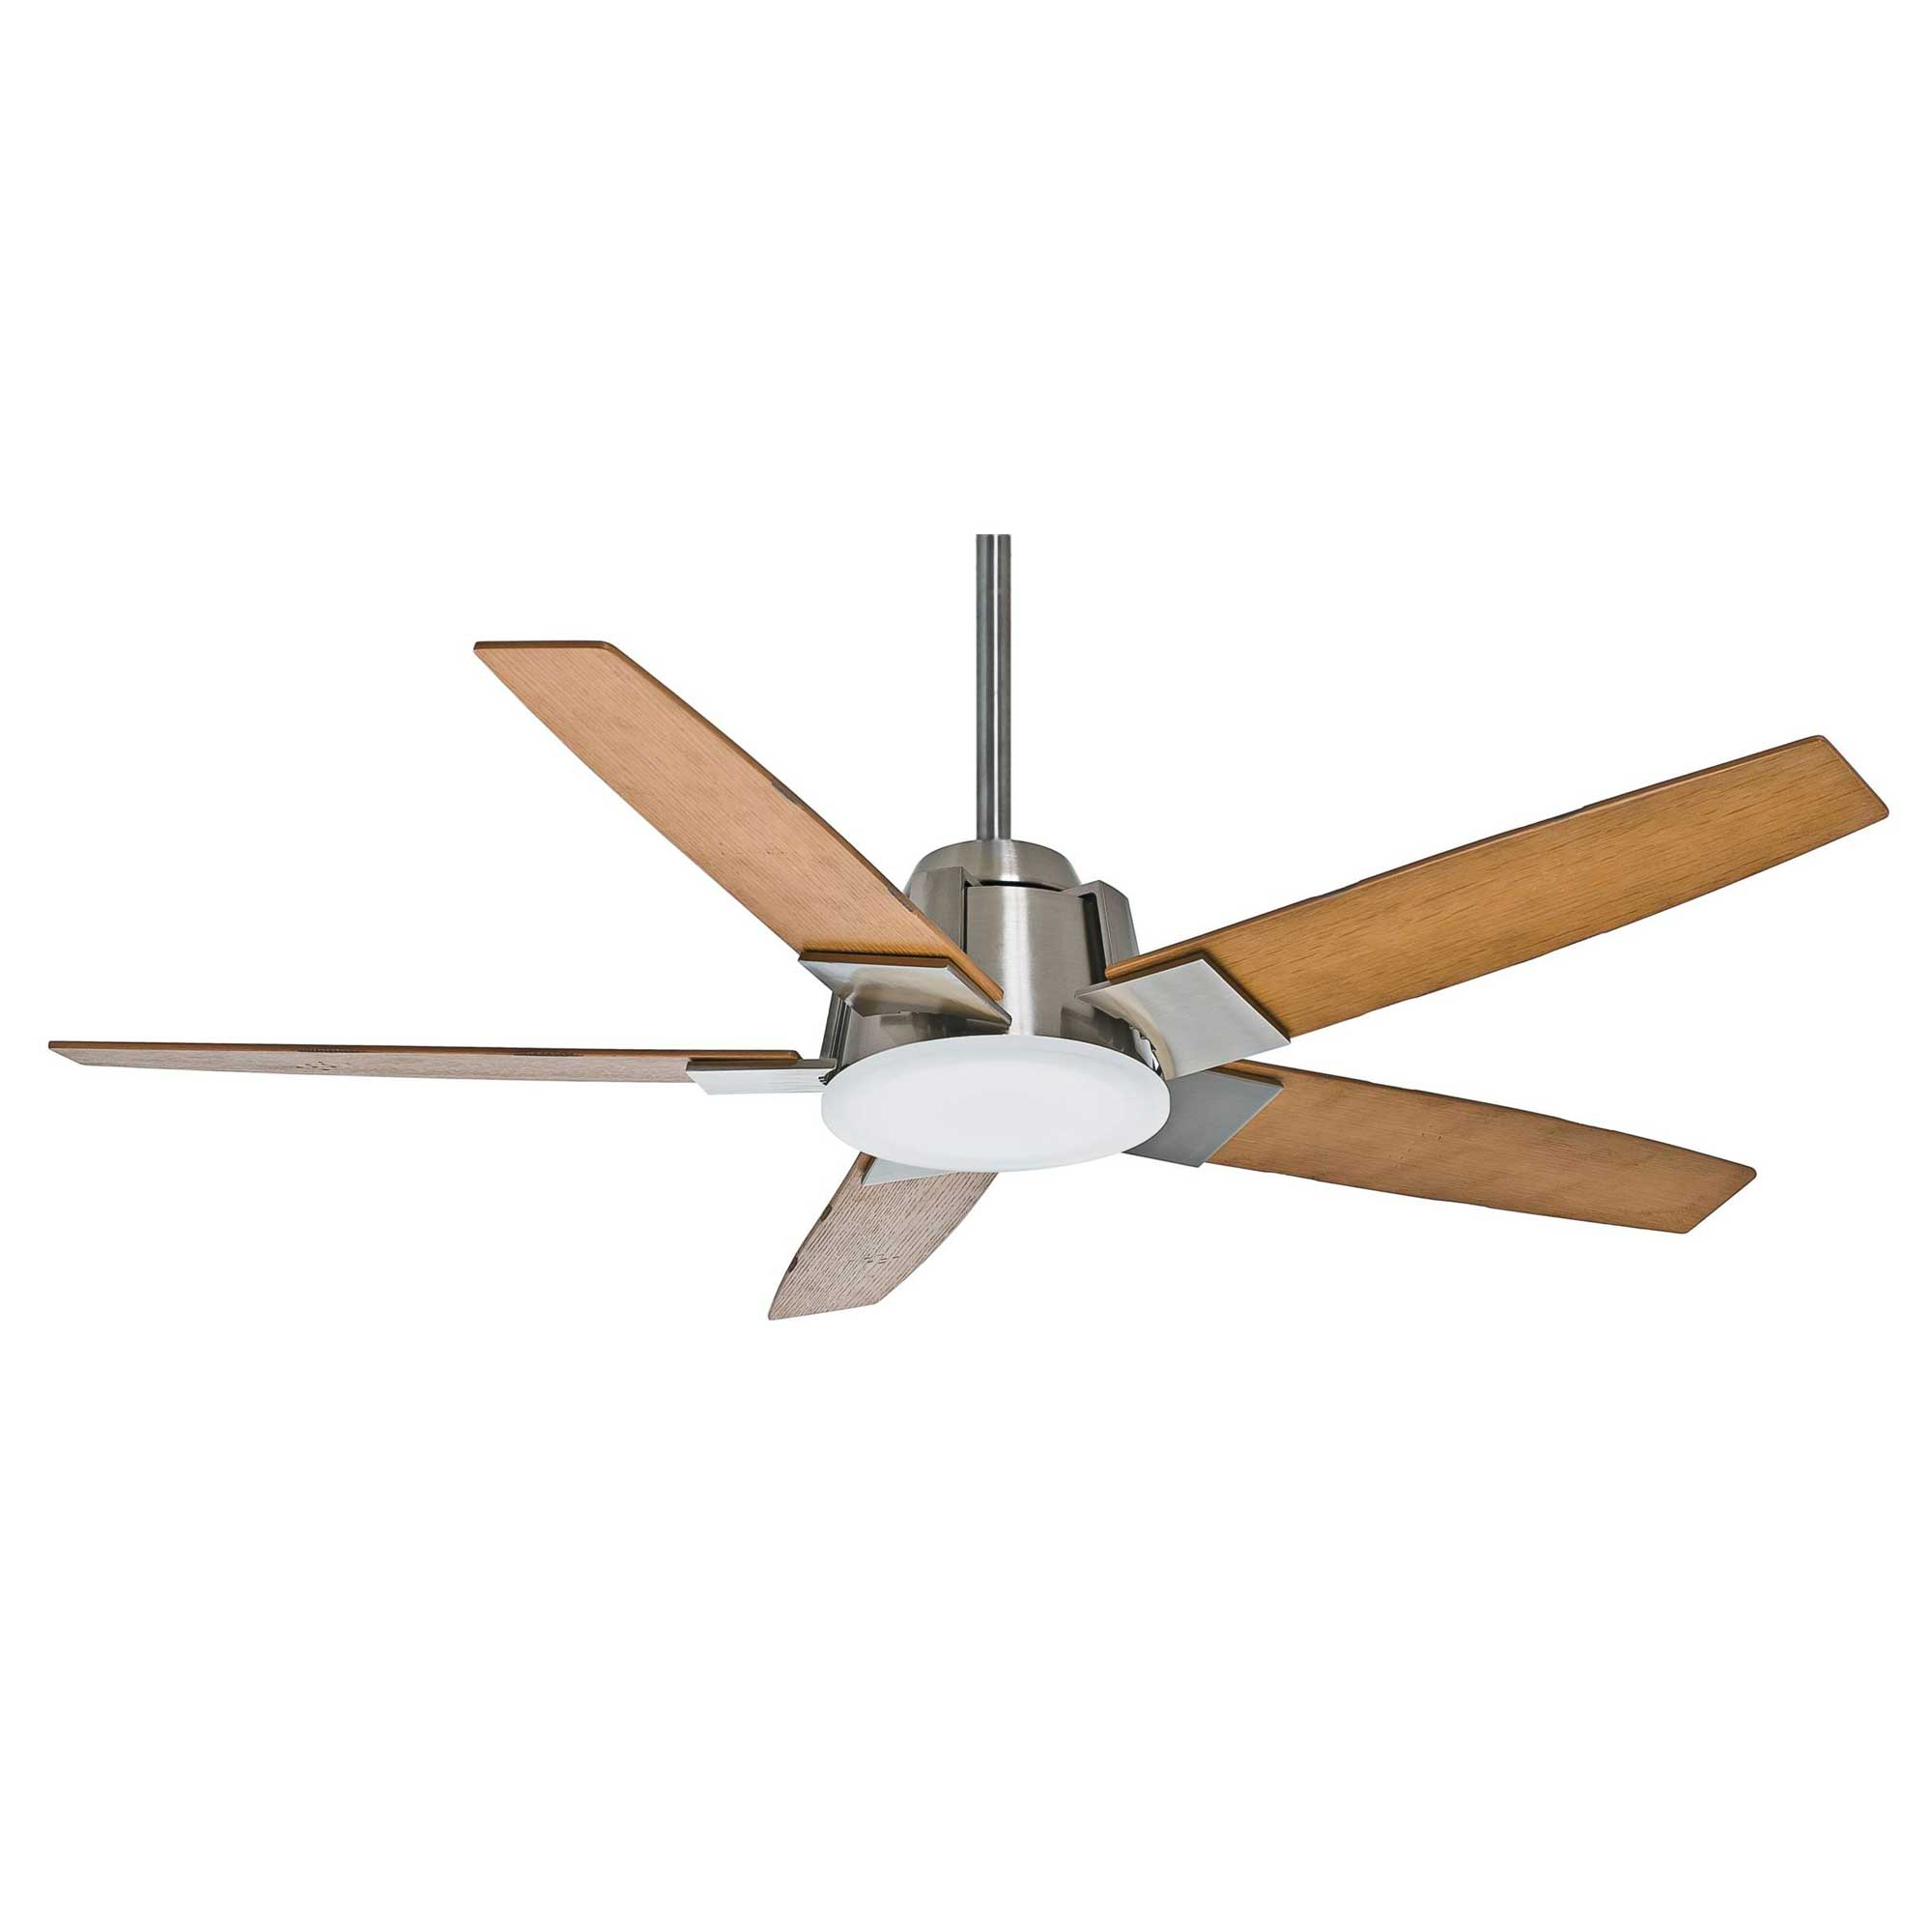 5-blade led ceiling fancasablanca fan | 59109